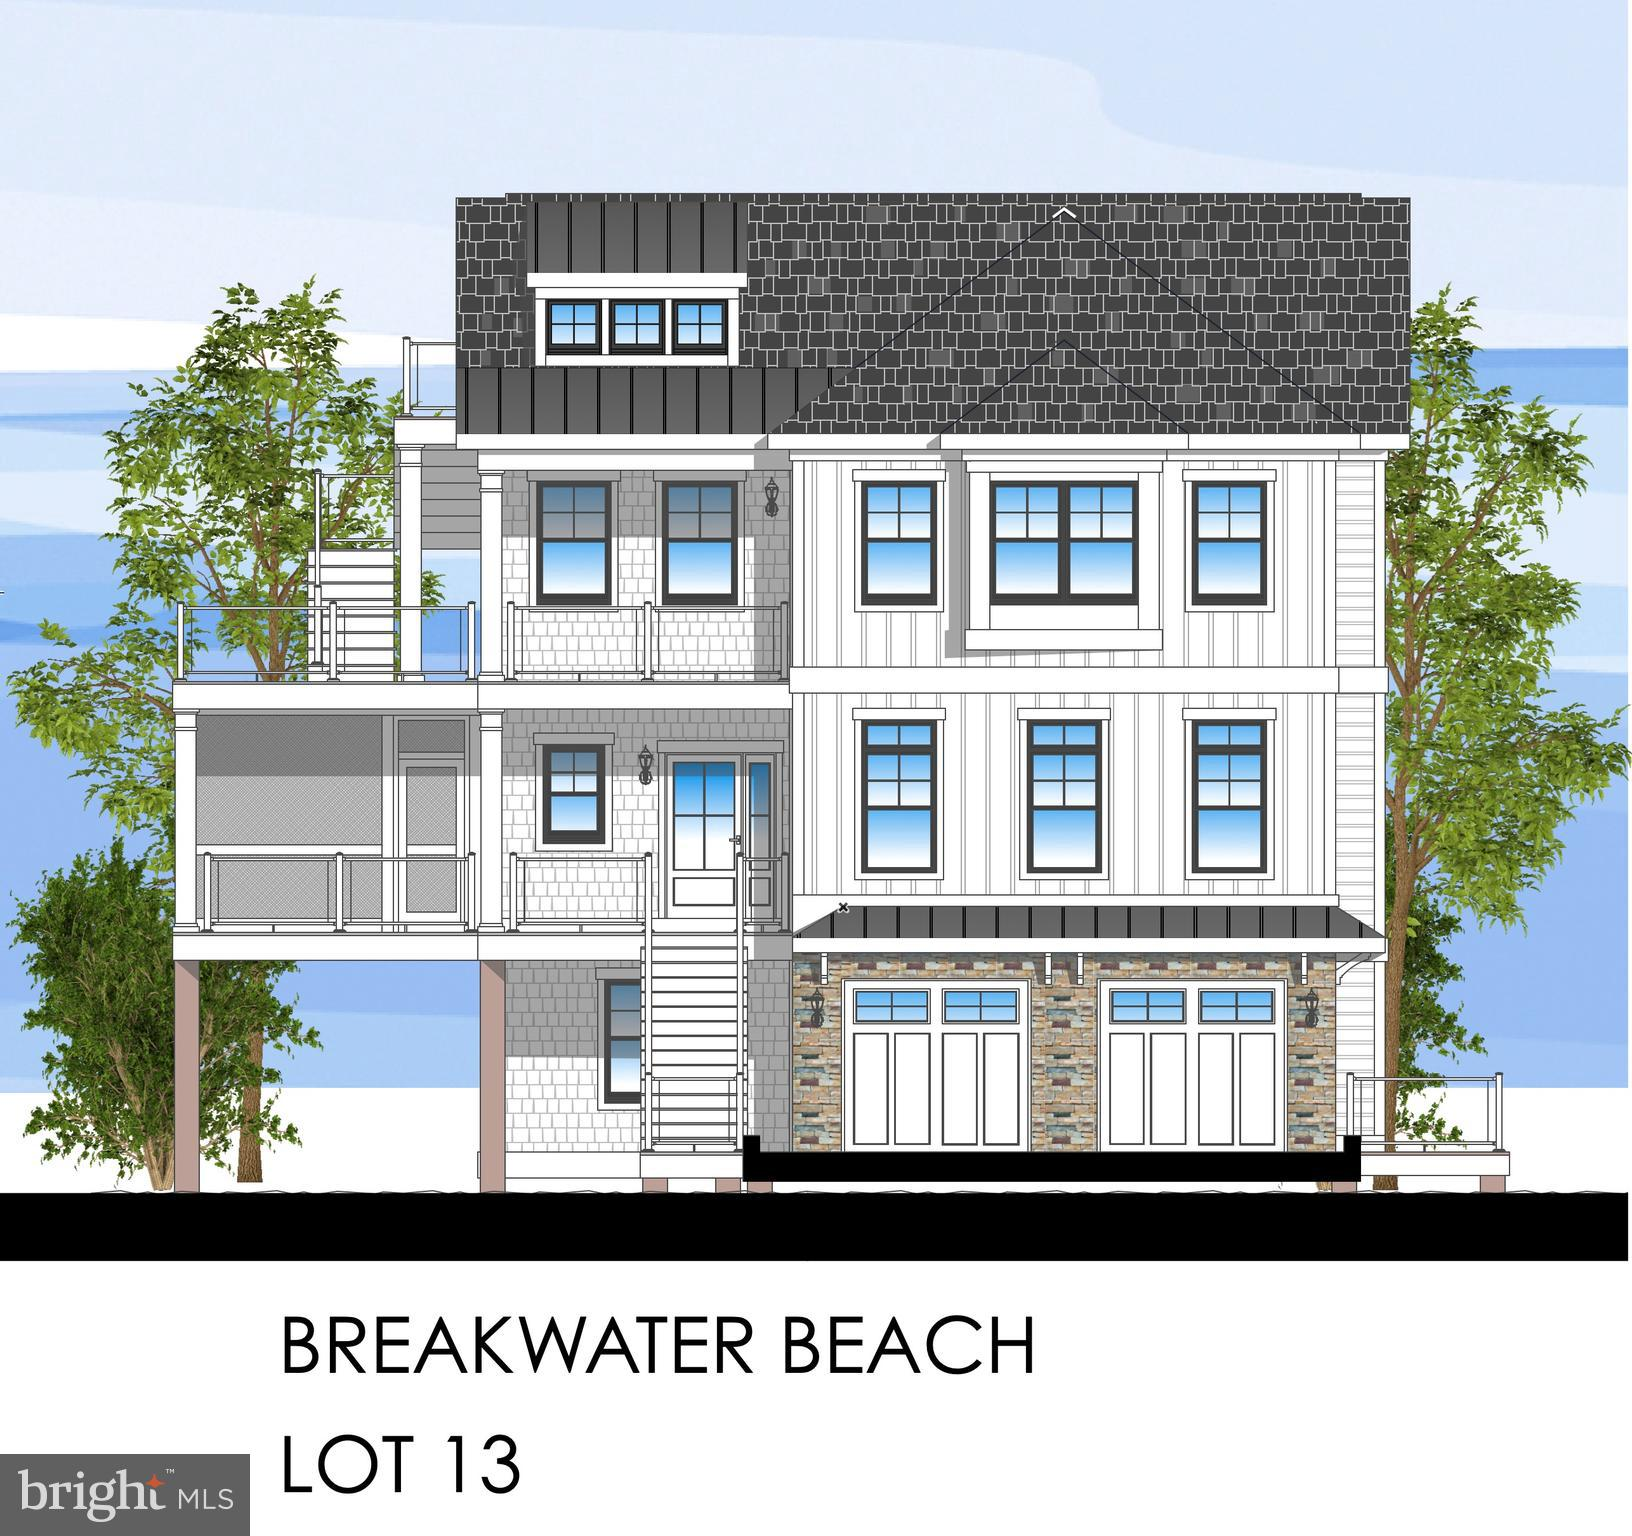 BREAKWATER BEACH - Direct Views of the Indian River Bay and Sunset!  New construction custom home broke ground in May 2021! Discover this rare offering of a new construction custom home located ocean block in the prestigious gated oceanfront community of Breakwater Beach! Fabulous views of Beach Cove and the Indian River Bay. Custom coastal home features quartz counters, wide plank flooring, shiplap, coffered ceilings, fireplace, tile showers and baths, lots of outdoor living space on decks, screened porches, & roof top deck.  Elevator shaft provides access to all three levels (elevator is optional starting at $40K) and comes standard as three closets for storage.  Ground level features two car garage, foyer, laundry room, family room, storage, and deck. Stairs go down from deck to fenced and sodded back yard.  Second level is an open floor plan with kitchen, great room with fireplace, dining room, screened porch, and deck with views of the bay. Master Suite and powder room on level two as well. Third level features three master suites and large deck with stairs to roof top deck. 4,048 square feet heated.   1,860 square feet of decks & porches.  489 sq. ft. garage.  6,397 Total Square footage. Breakwater Beach is a gated community with guarded beach.   Lots with no builder tie-in and other lot home packages available.  Home delivery 1st quarter 2022.